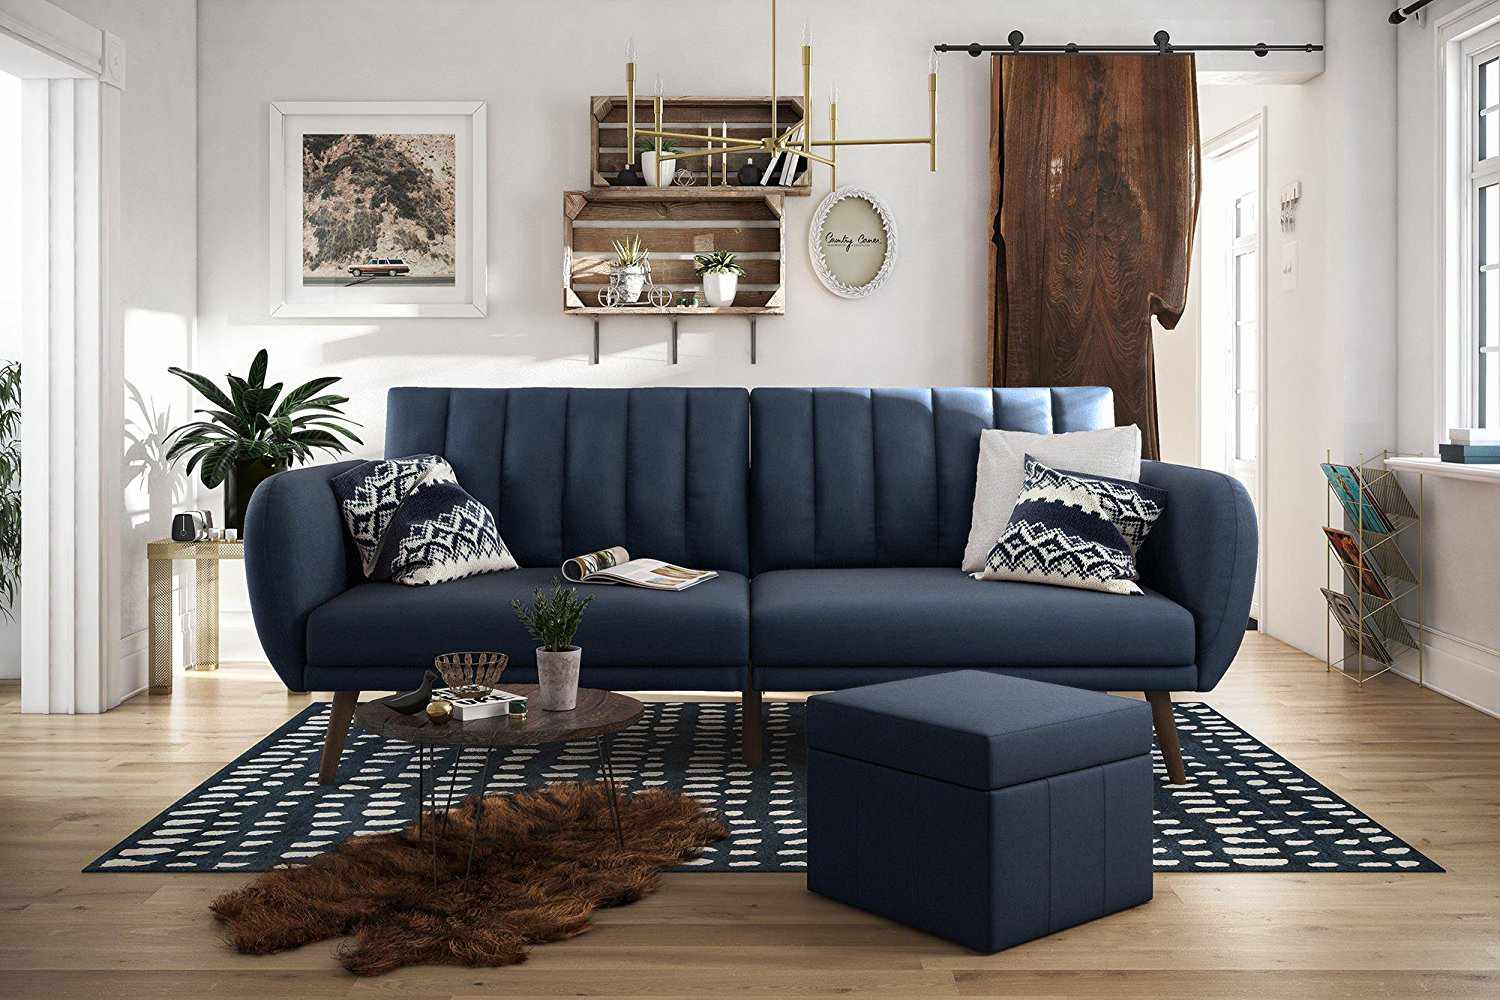 The Best Places To Buy Furniture In 2019